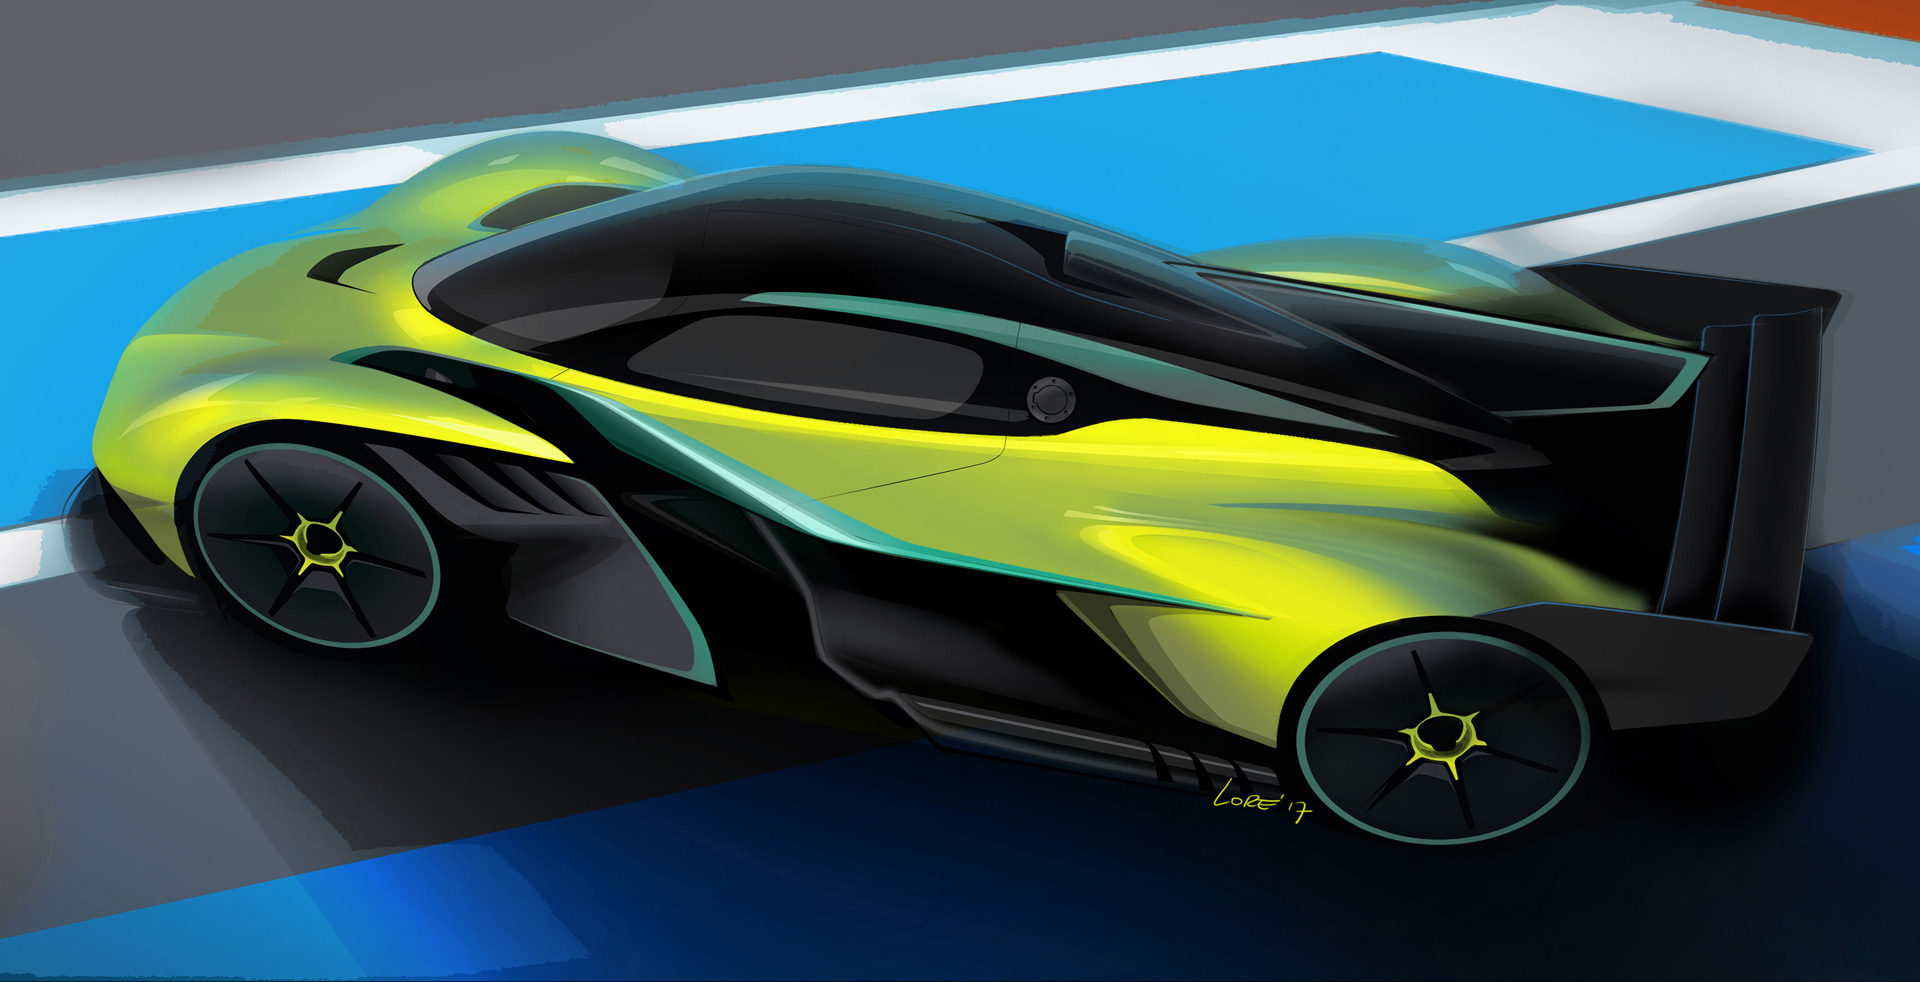 Aston Martin Valkyrie Amr Pro Promises F1 Like Track Times